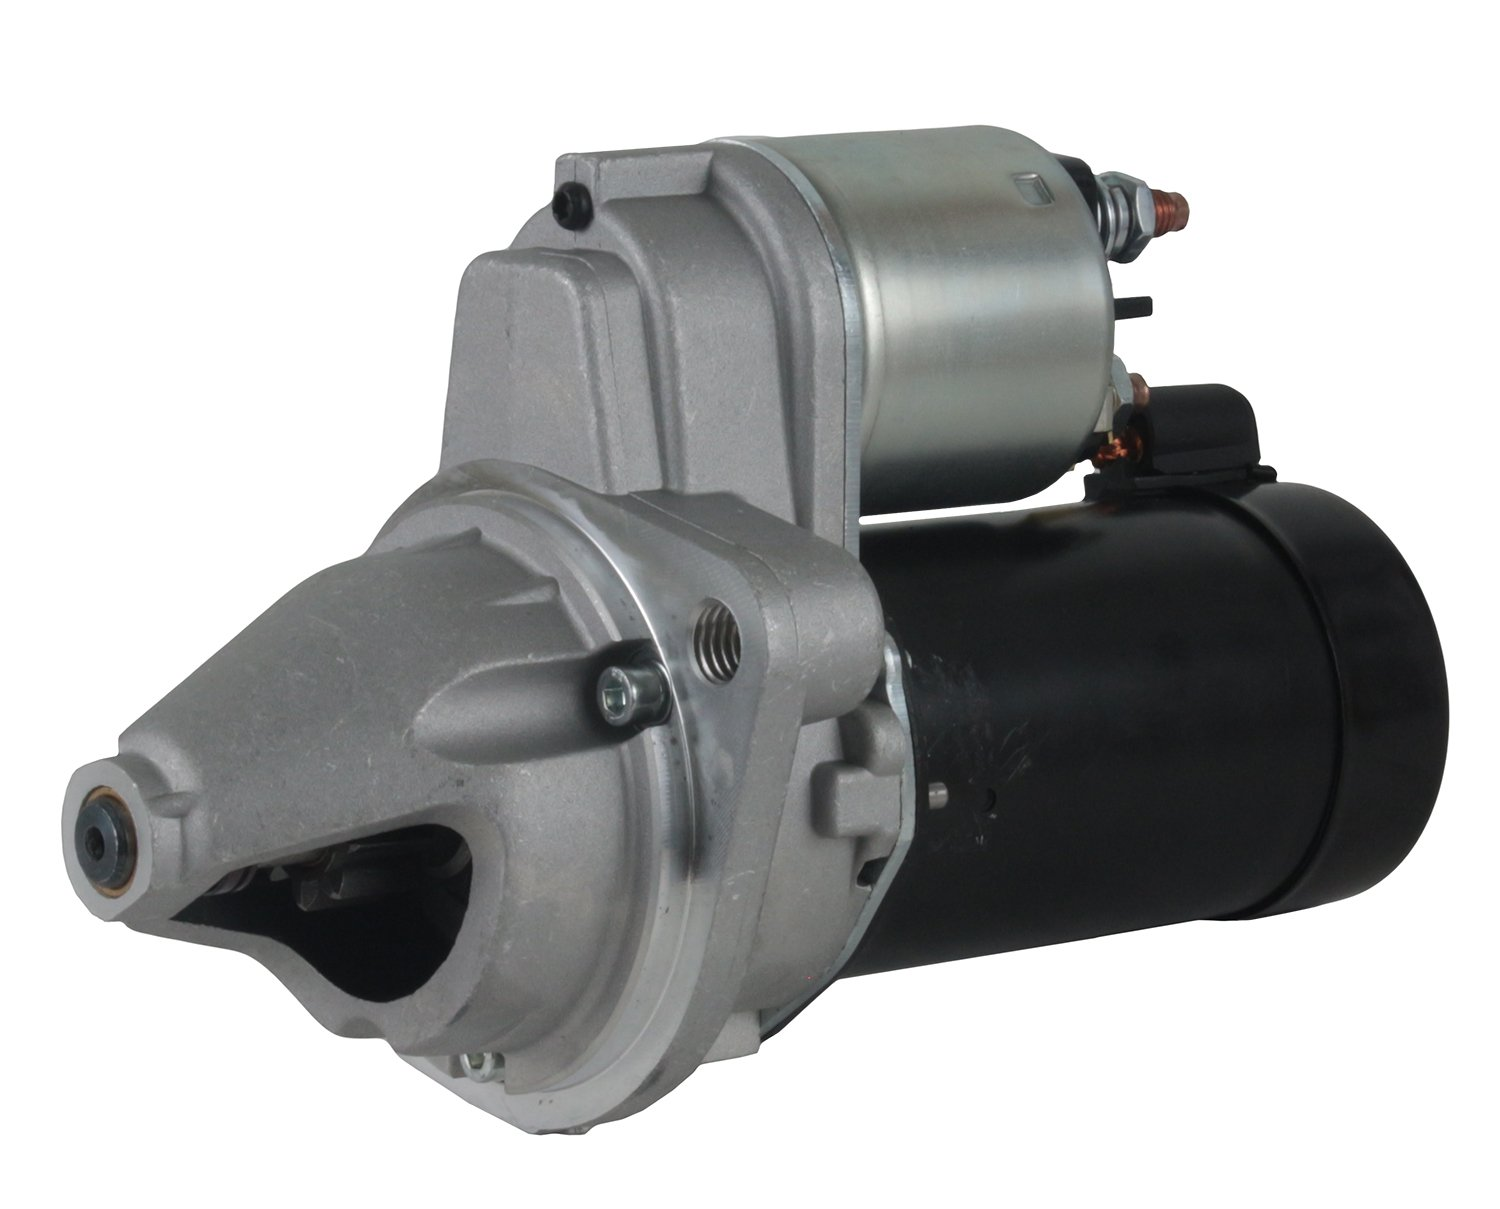 NEW MARINE COATED STARTER FITS VOLVO PENTA DIESEL 2002 AG B BG BT D T 2003 2003-SOLAS by Rareelectrical (Image #1)